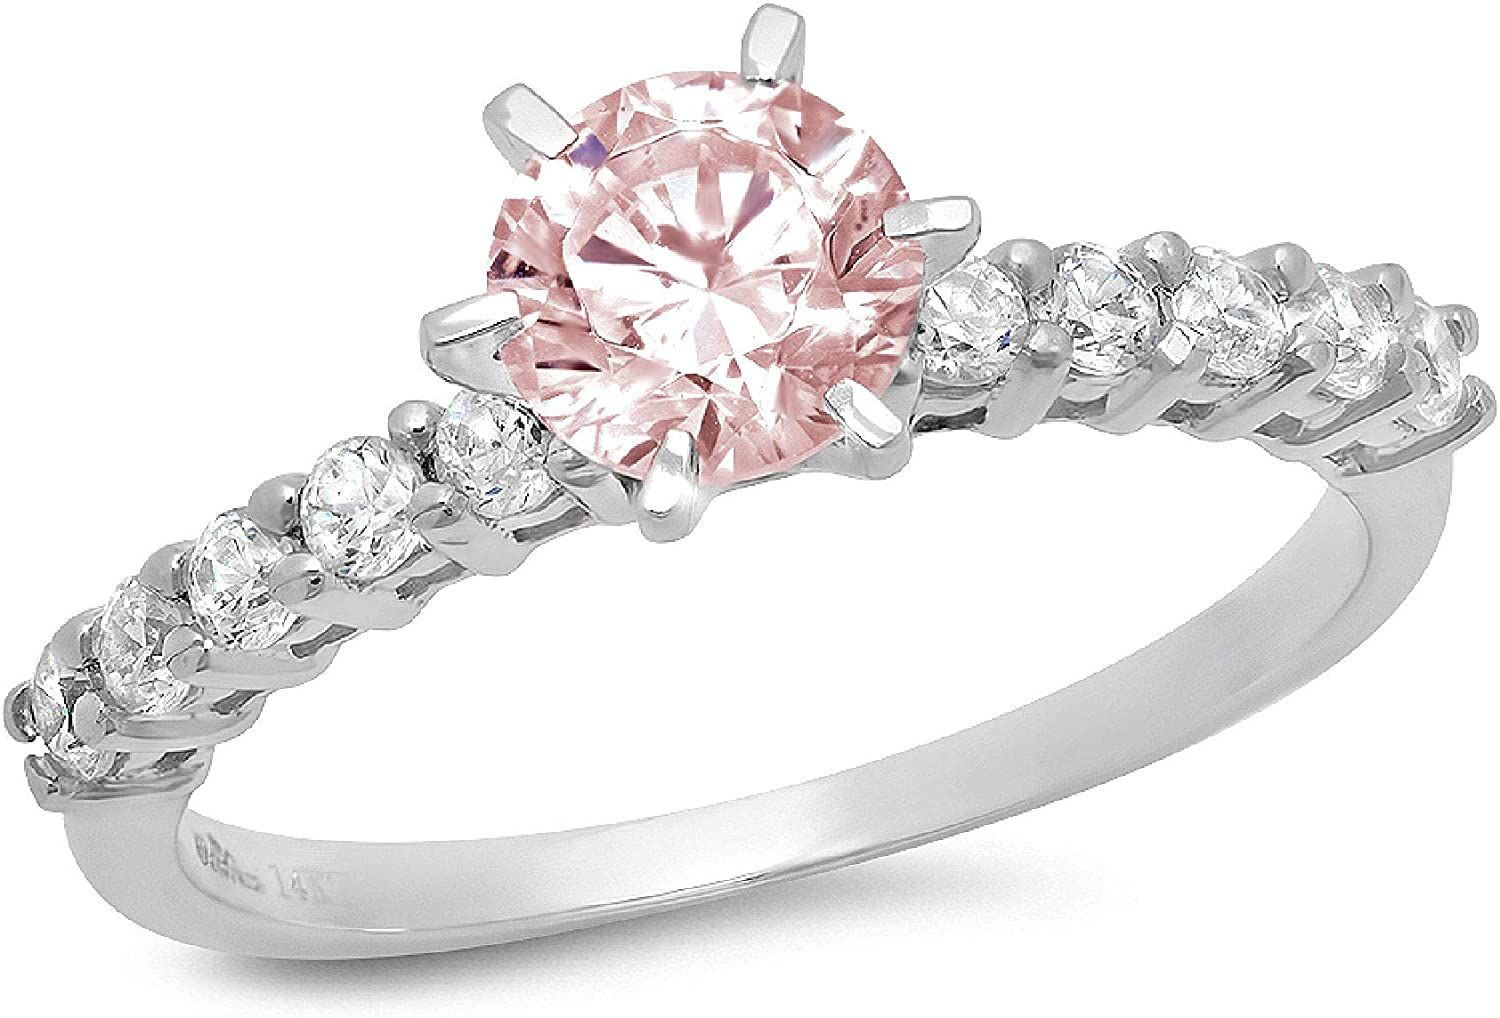 1.20ct Brilliant Round Cut Solitaire Genuine Flawless Pink Simulated Diamond Gemstone Engagement Promise Anniversary Bridal Wedding Accent Ring Solid 18K White Gold